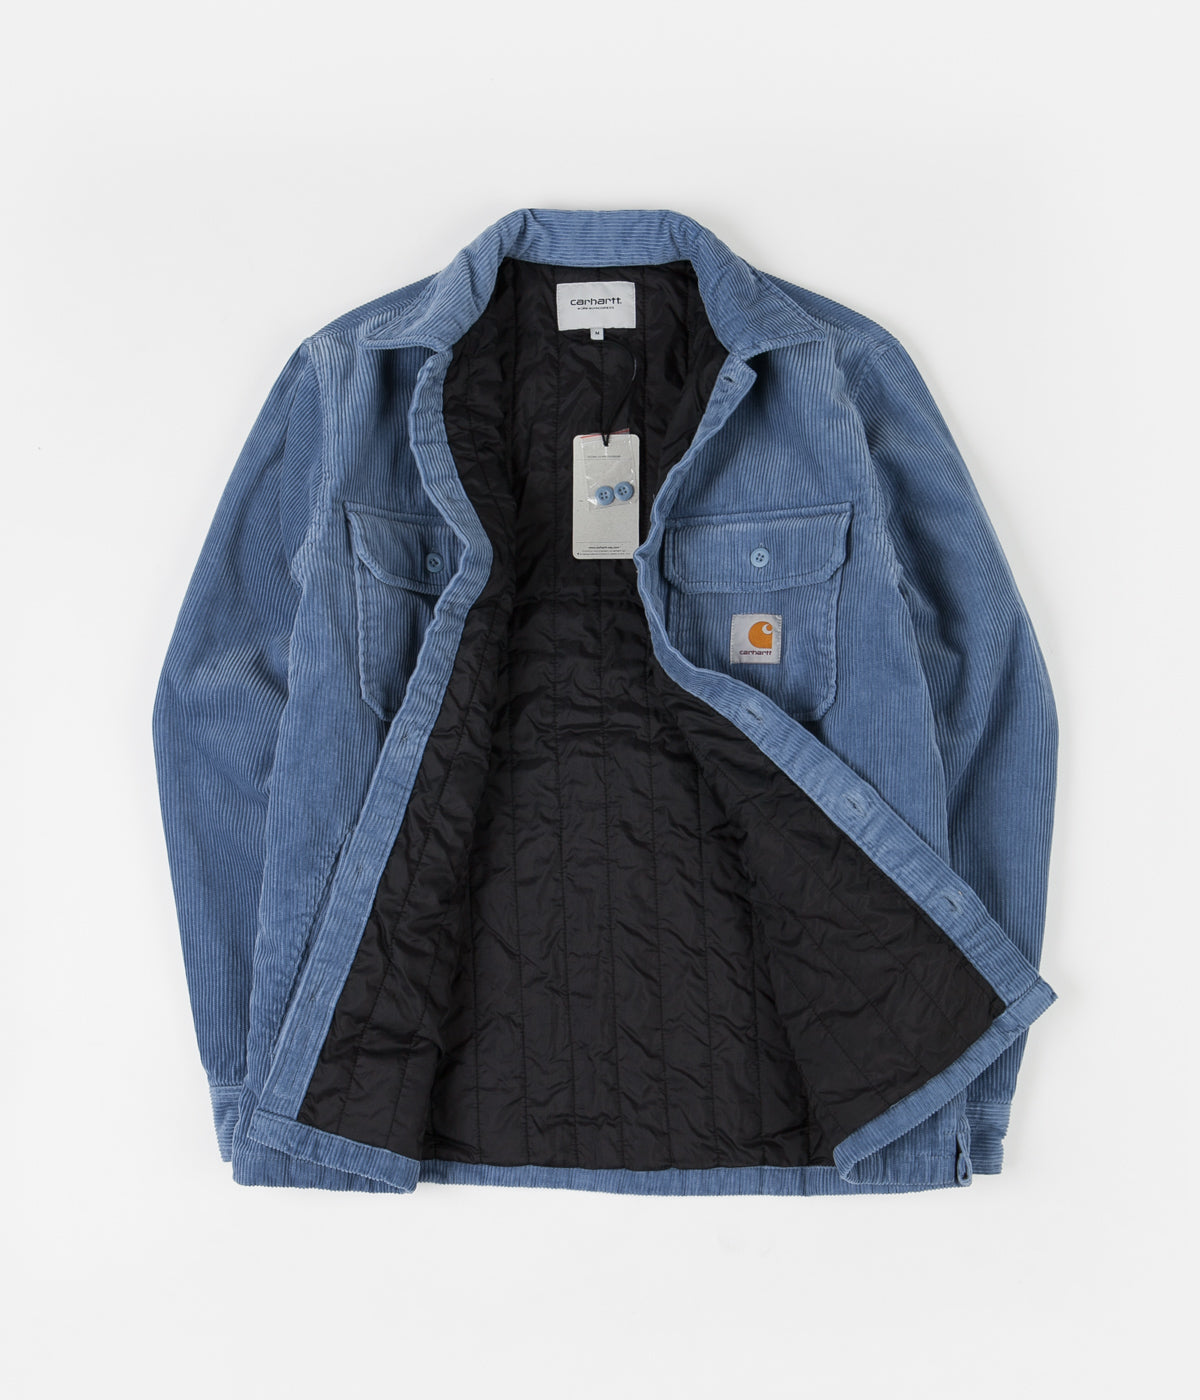 Carhartt Whitsome Shirt Jacket - Cold Blue